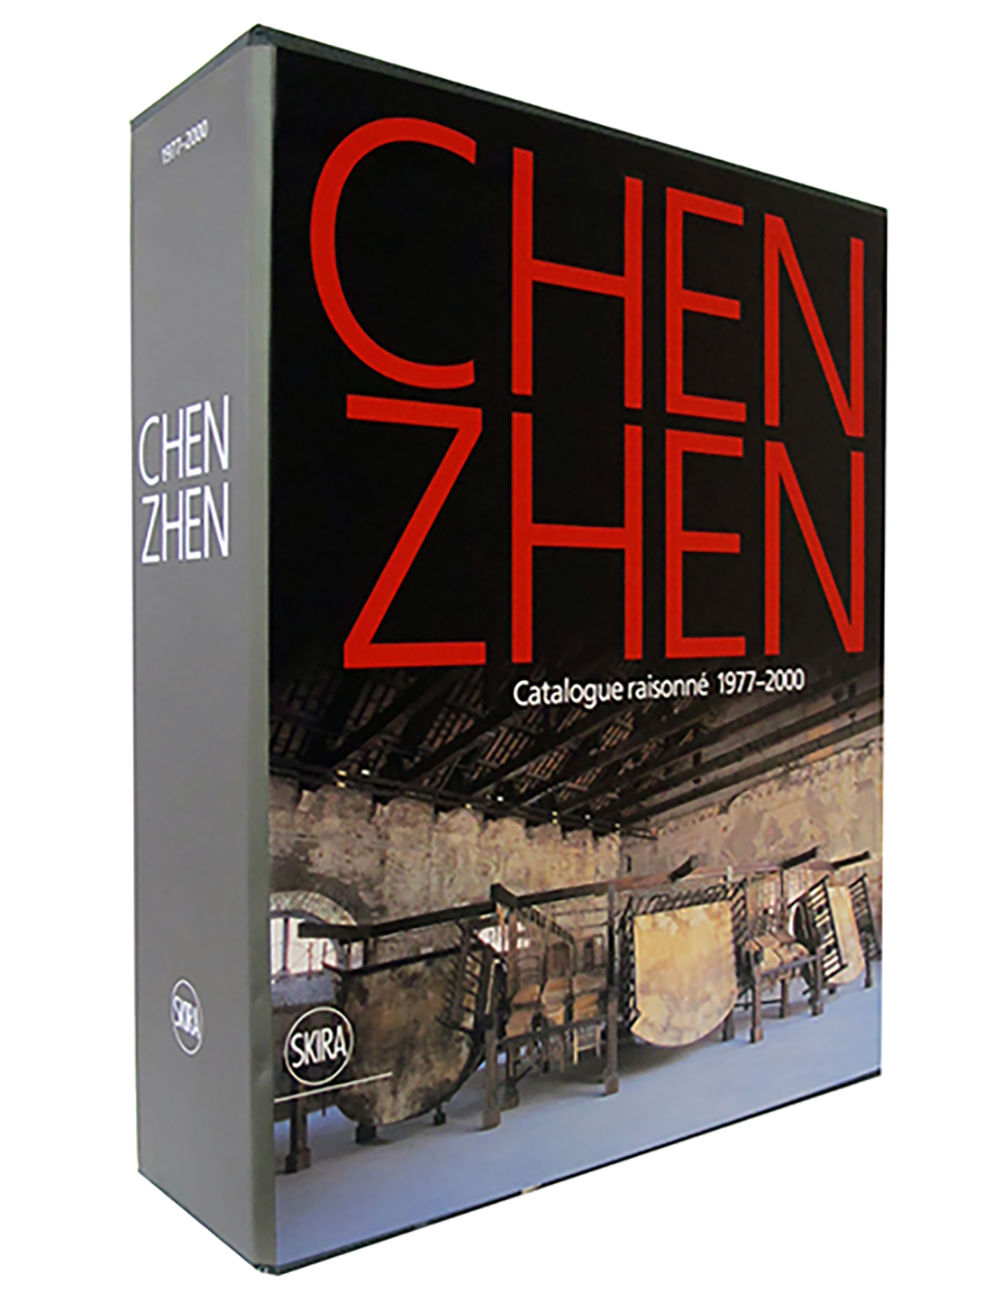 Chen Zhen. Catalogue Raisonné. Volume I (1977 - 1996) and Volume II (1997 - 2000)